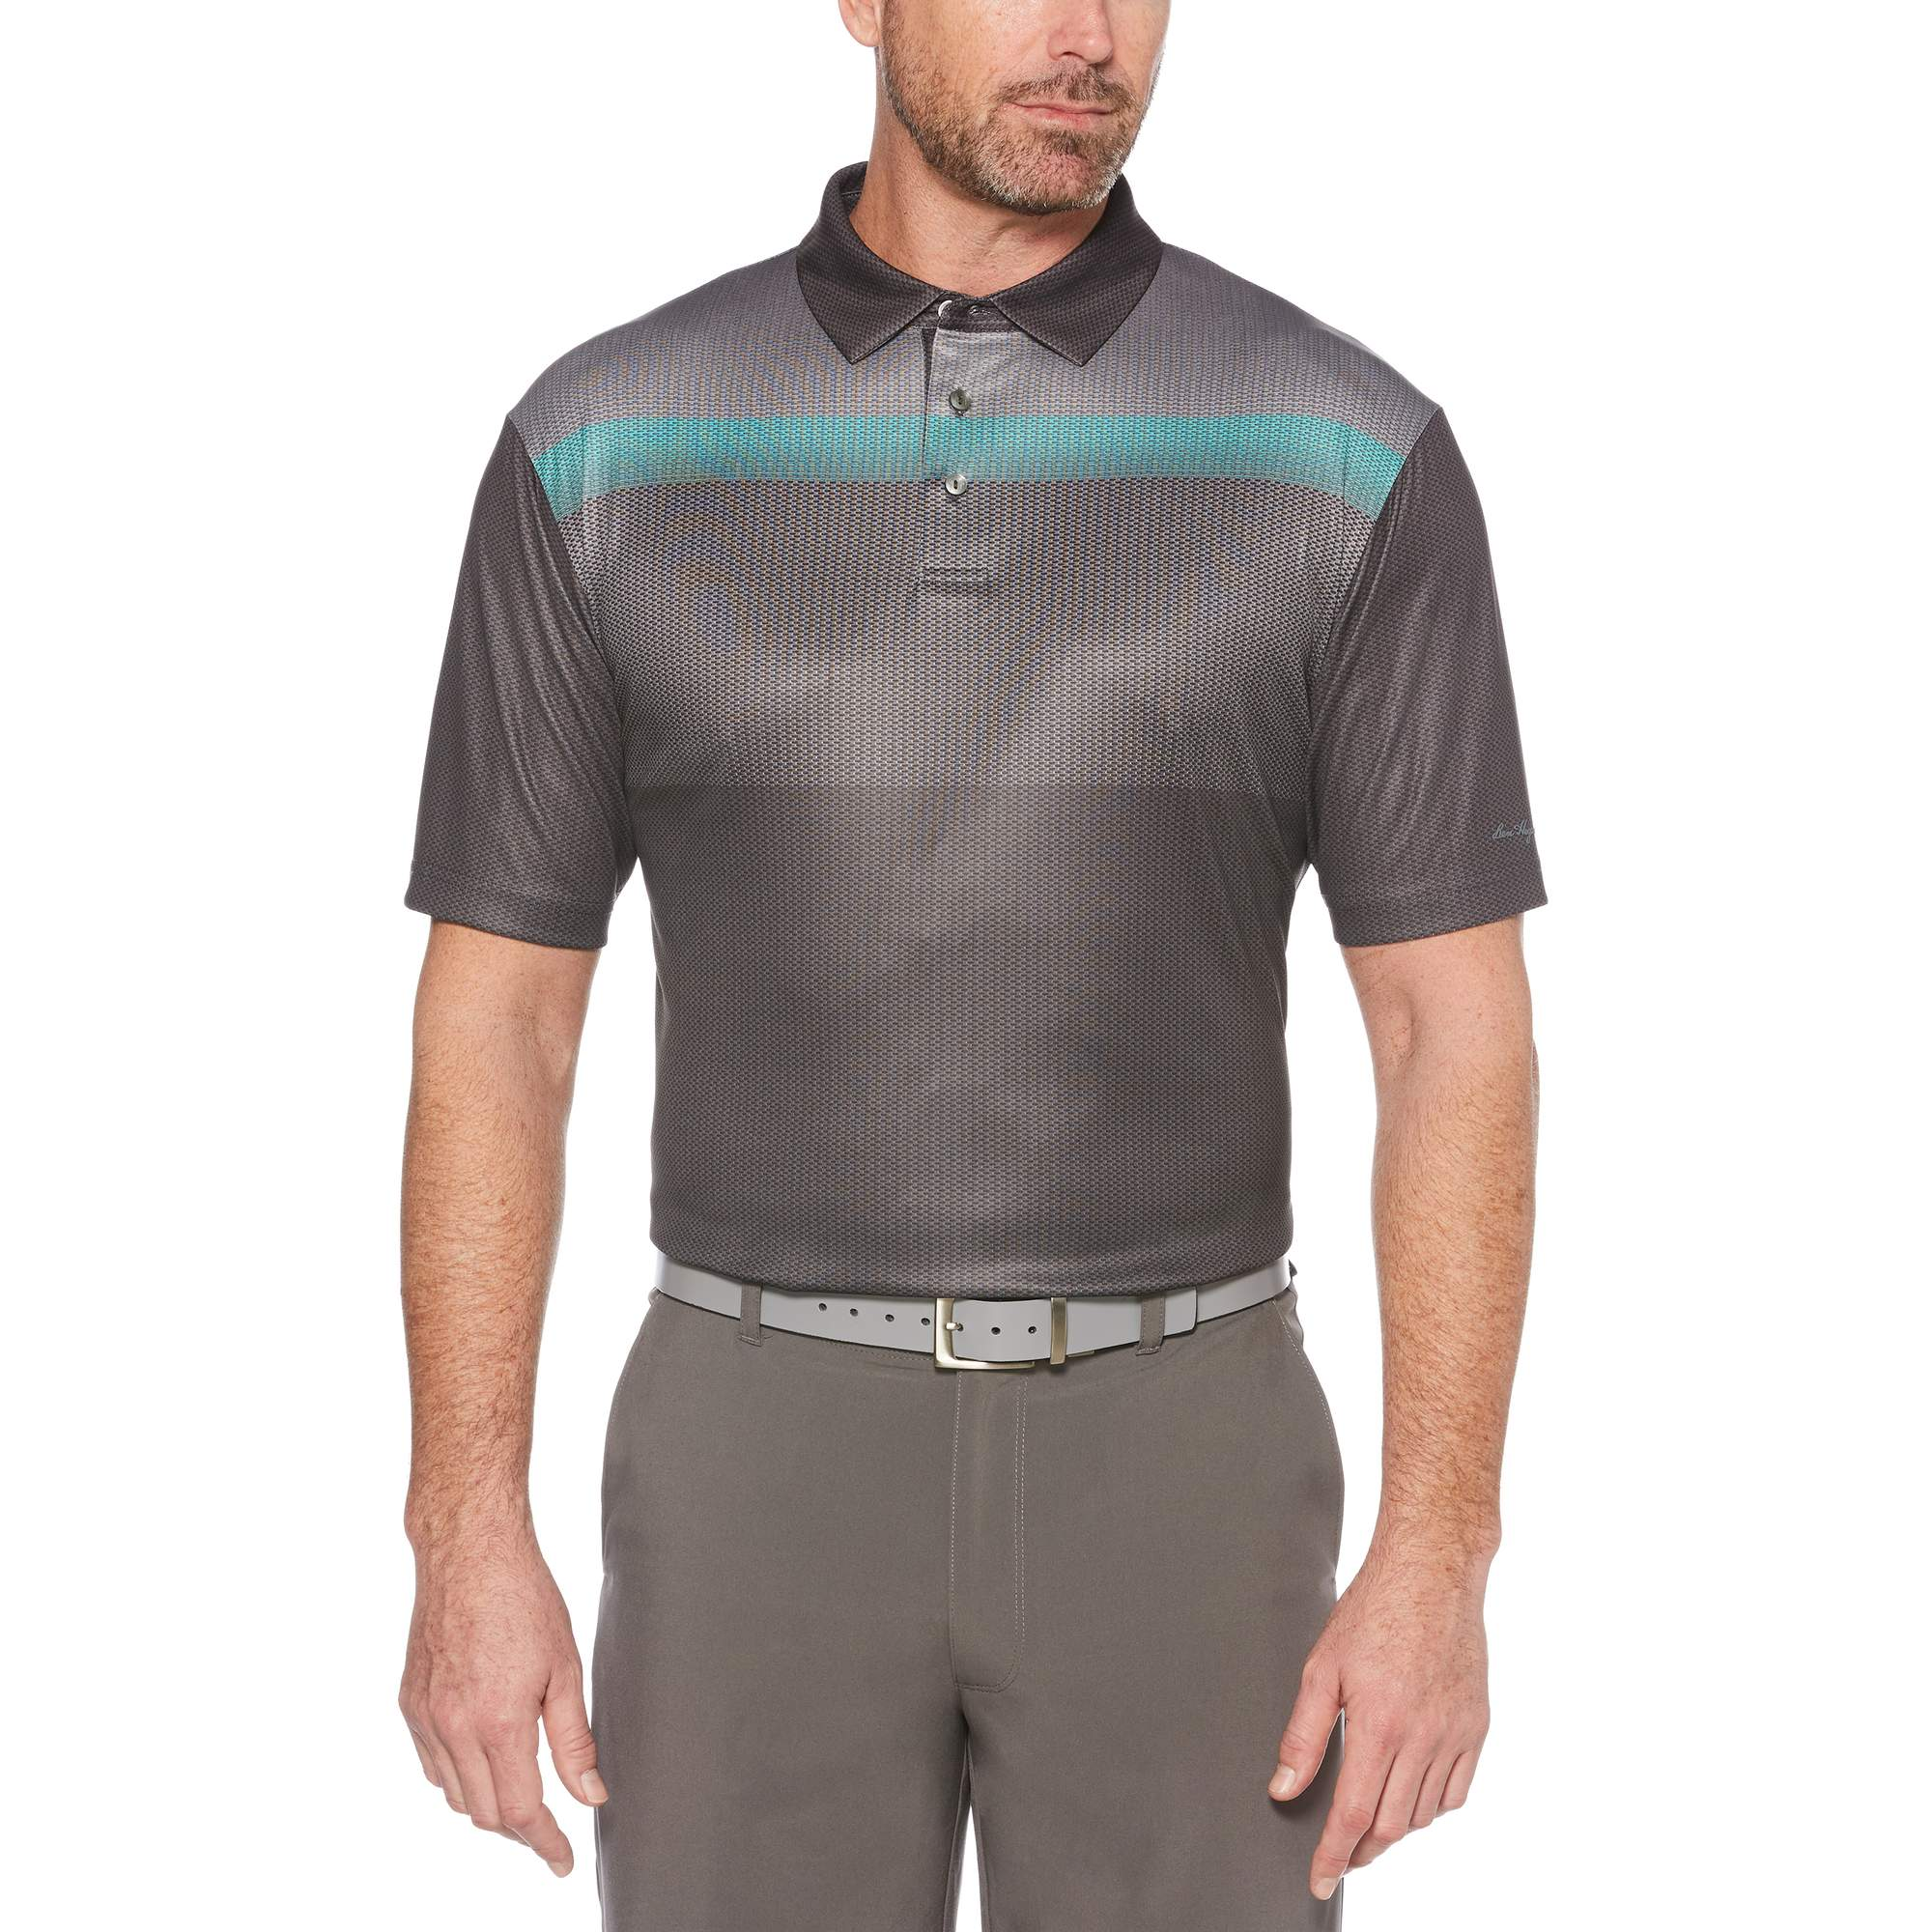 Men's Performance Short Sleeve Printed Polo Shirt, up to 5XL